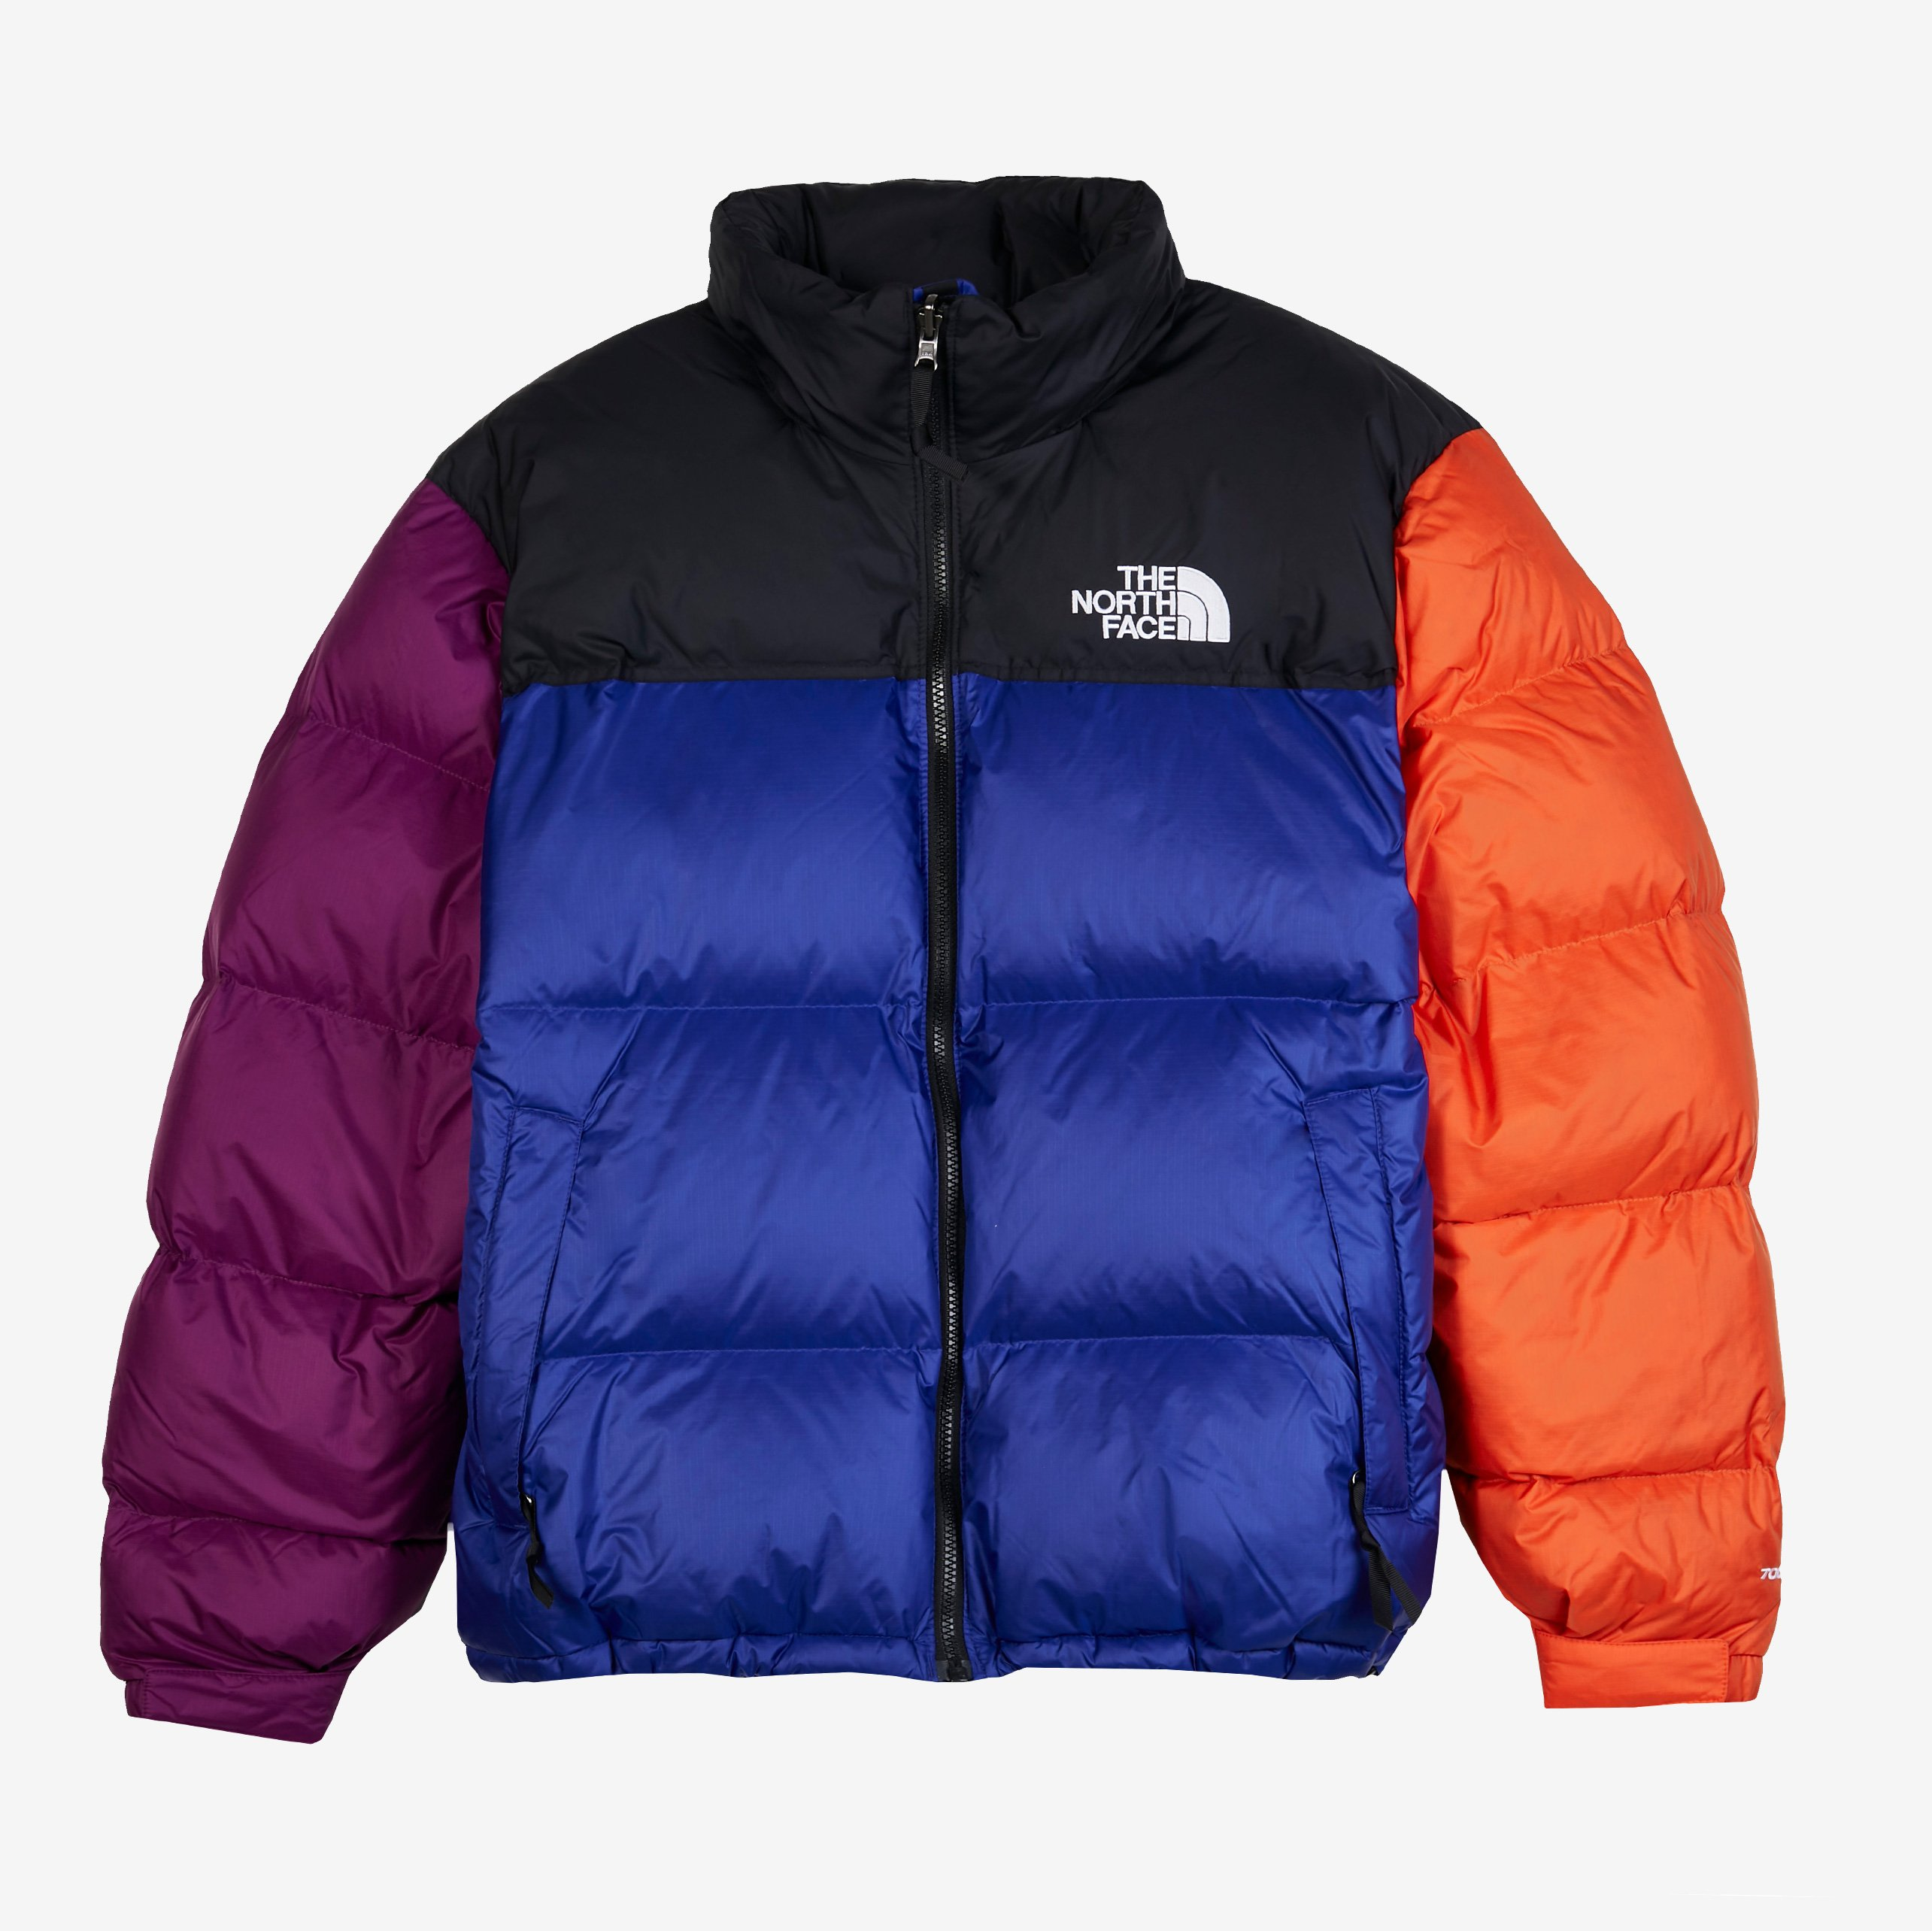 The North Face 1996 Retro Nuptse Jacket T93c8d9qx